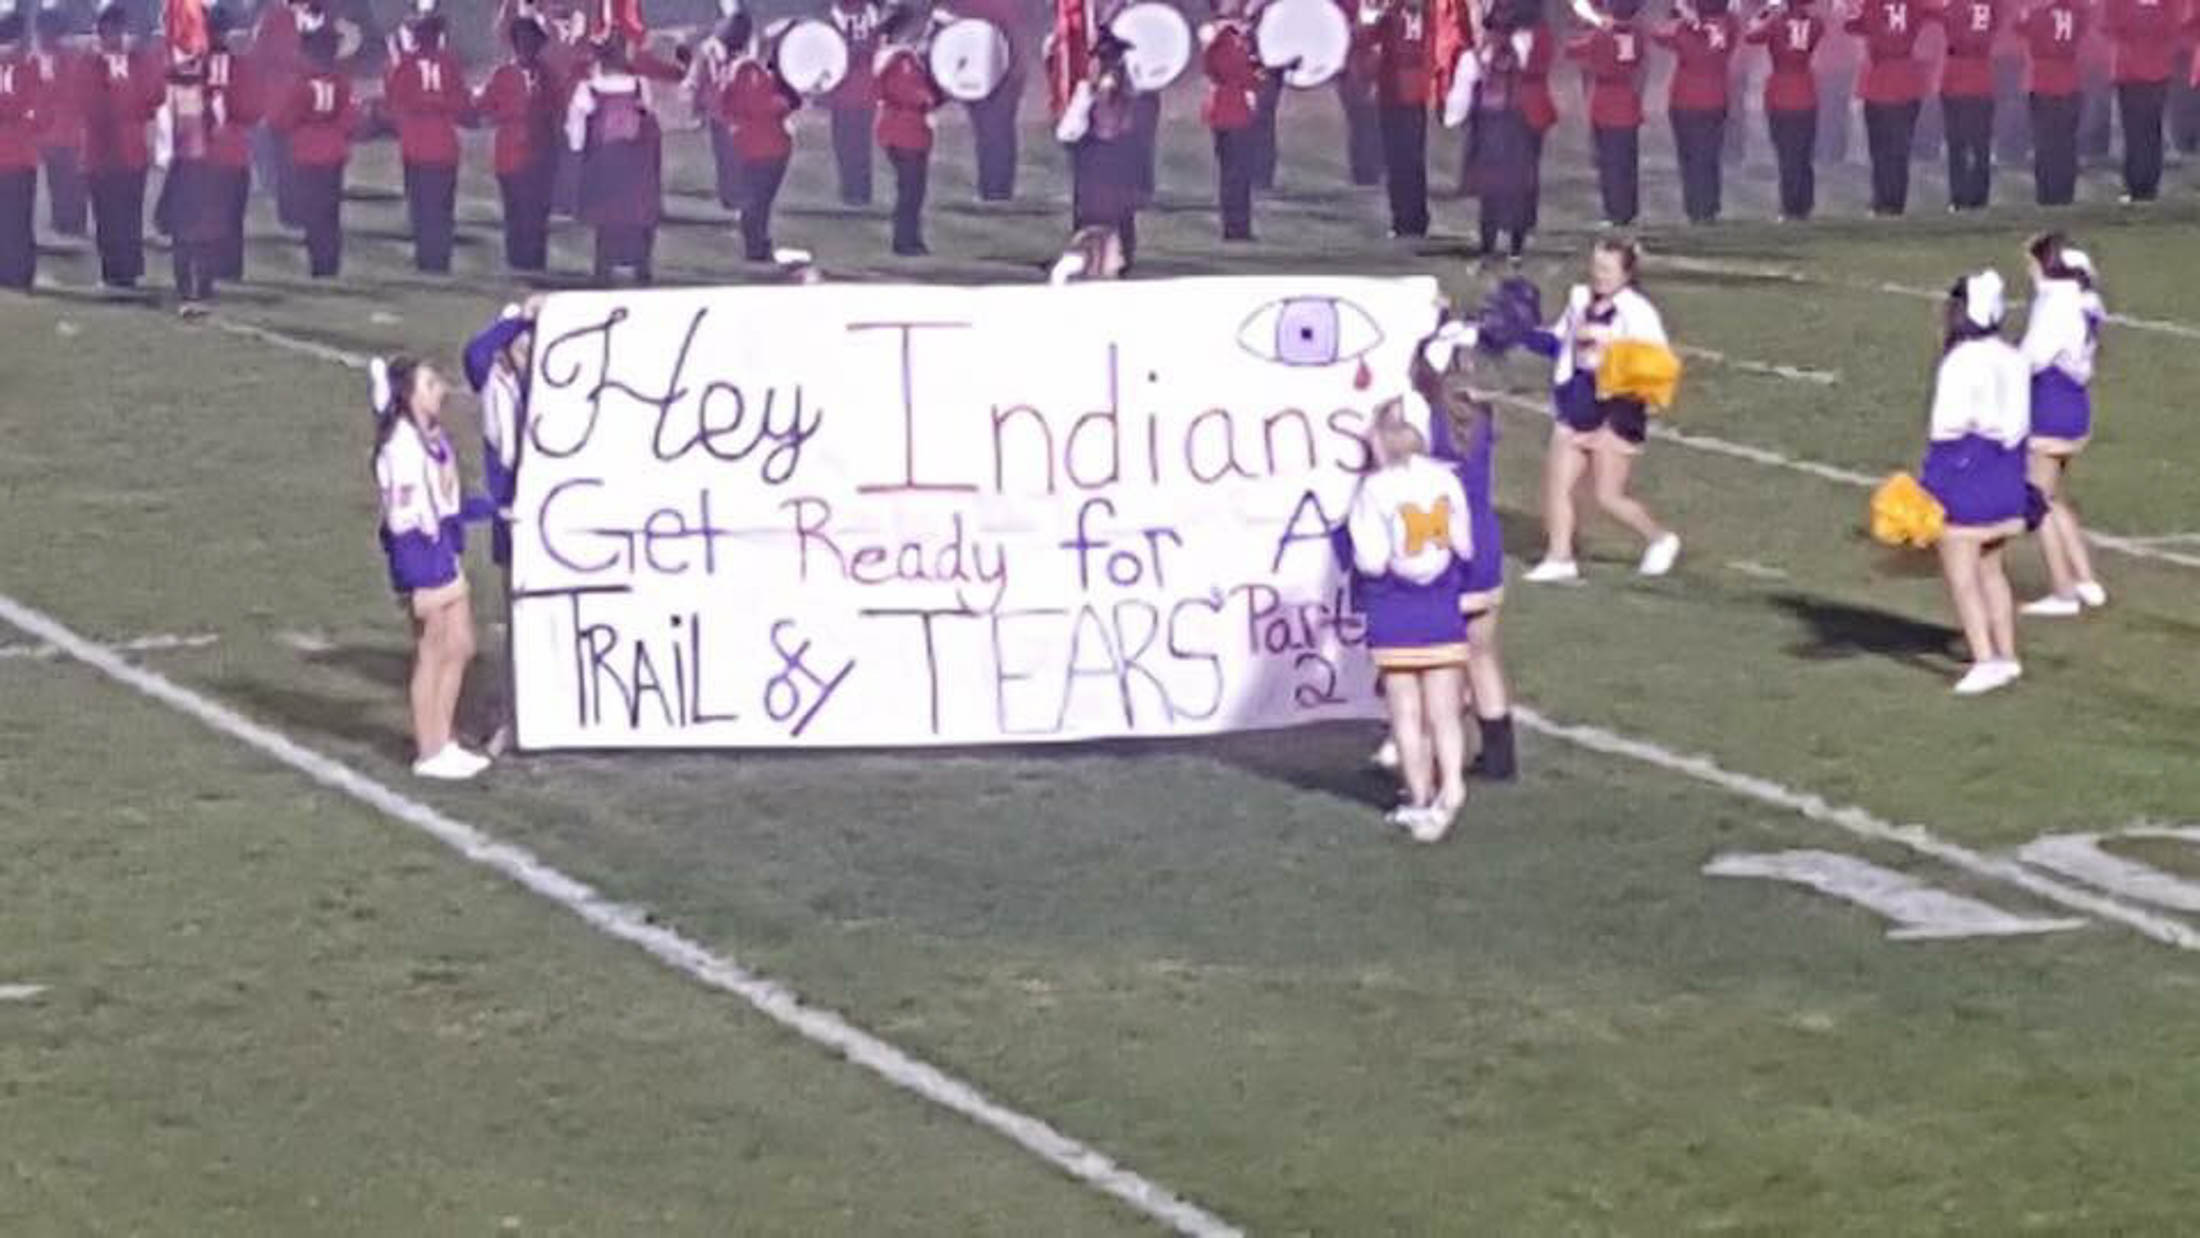 """Greenfield-McClain High School cheerleaders display a banner reading """"Hey Indians, Get Ready for A Trail of Tears Part 2"""" ahead of their football game against Hillsboro High football game on Friday, Oct. 28, 2016 in Ohio. Many of found the banner to be racist and the school has since issued an apology. (Courtesy of Deadspin)"""